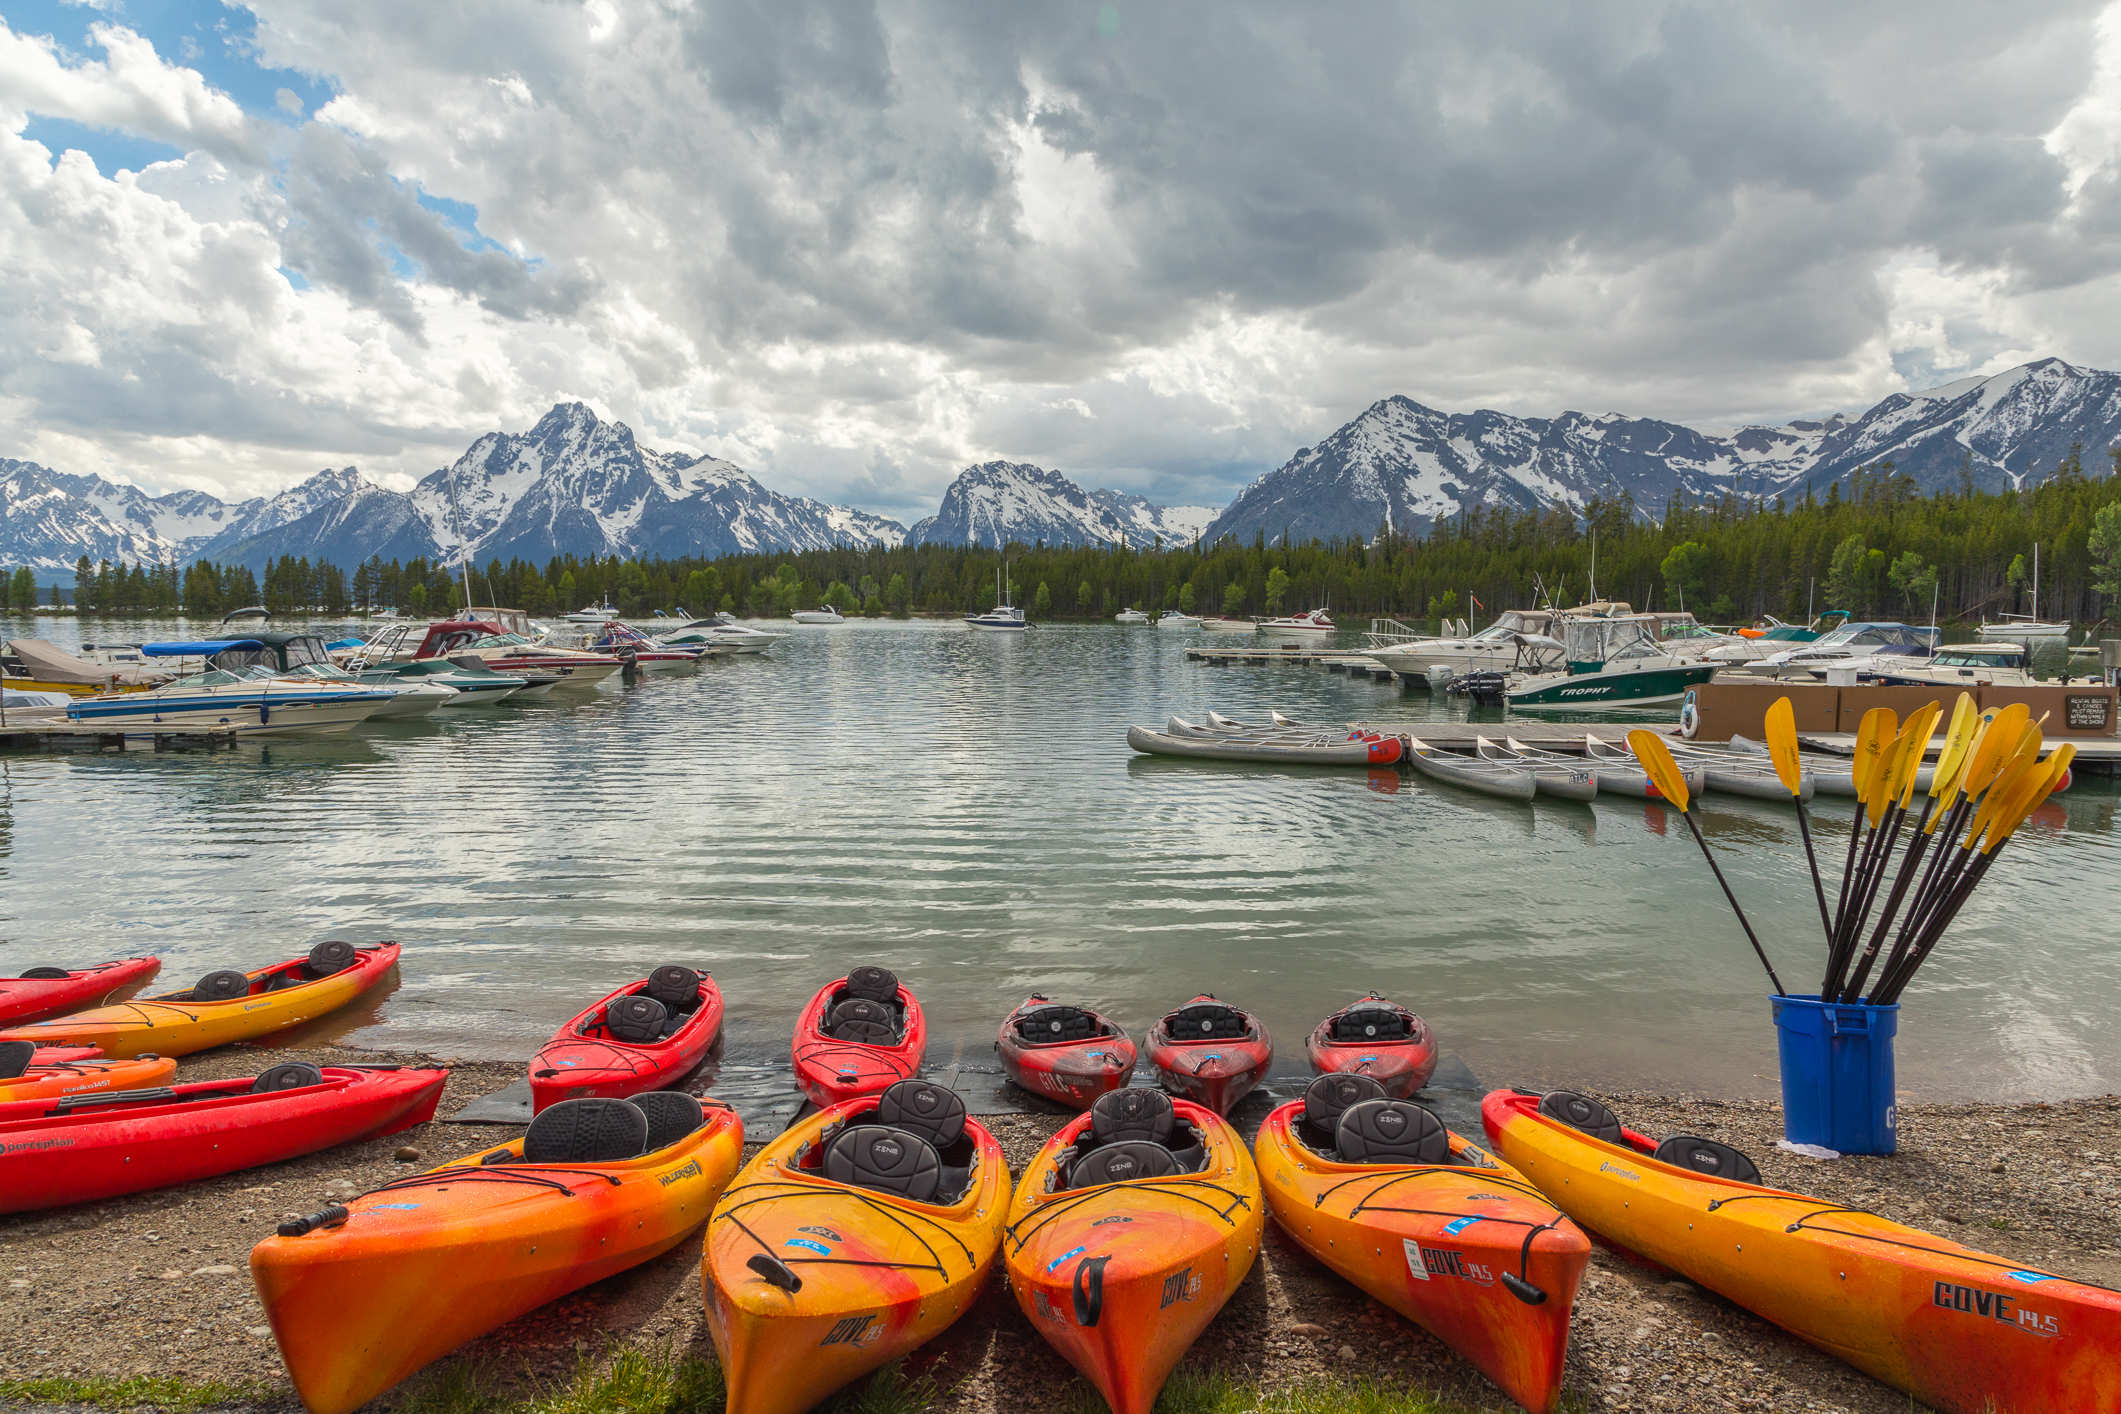 Colter Bay, Image # 3383